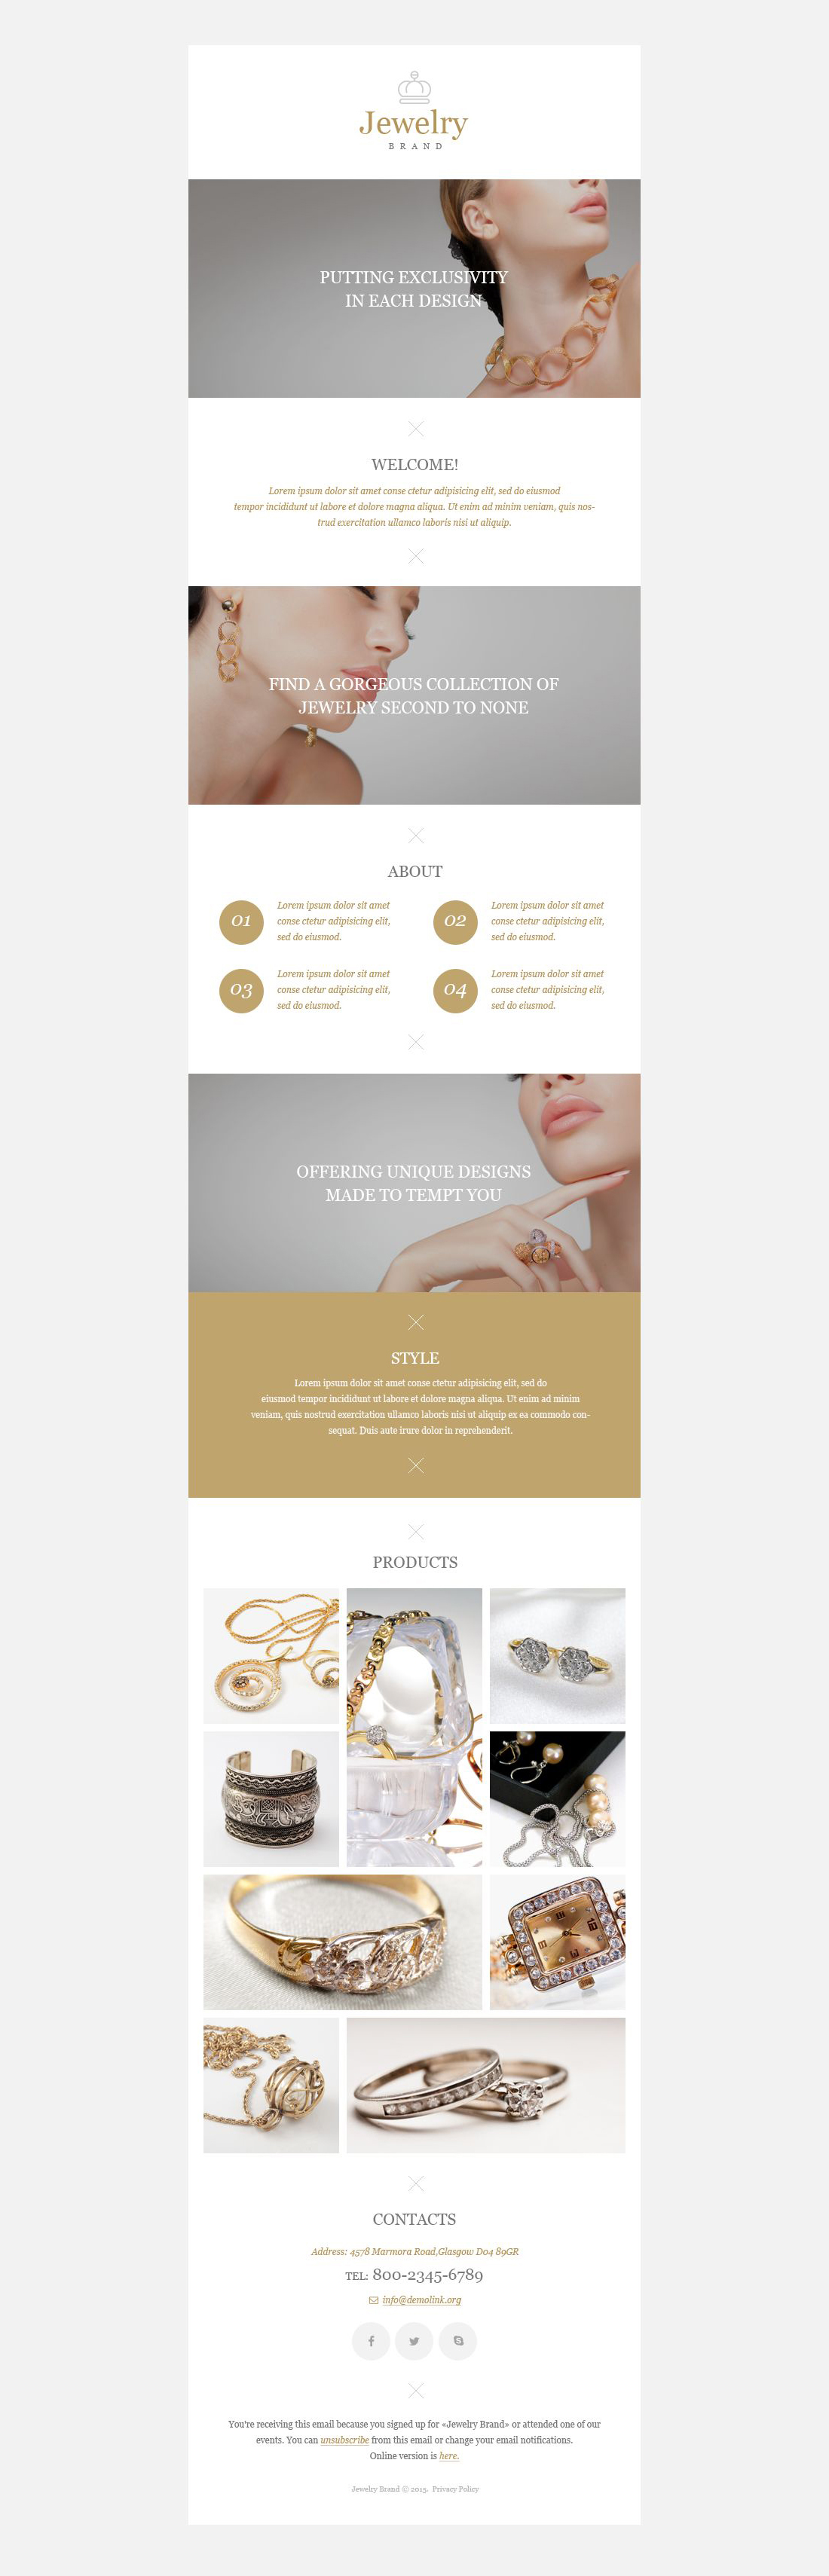 The Jewelry Brand Newsletter Template Design 52988, one of the best Newsletter templates of its kind (jewelry, most popular), also known as jewelry brand Newsletter template, collections online store Newsletter template, jewels Newsletter template, gold Newsletter template, silver Newsletter template, golden ring Newsletter template, rings Newsletter template, watch Newsletter template, watches store Newsletter template, souvenir Newsletter template, present and related with jewelry brand, collections online store, jewels, gold, silver, golden ring, rings, watch, watches store, souvenir, present, etc.